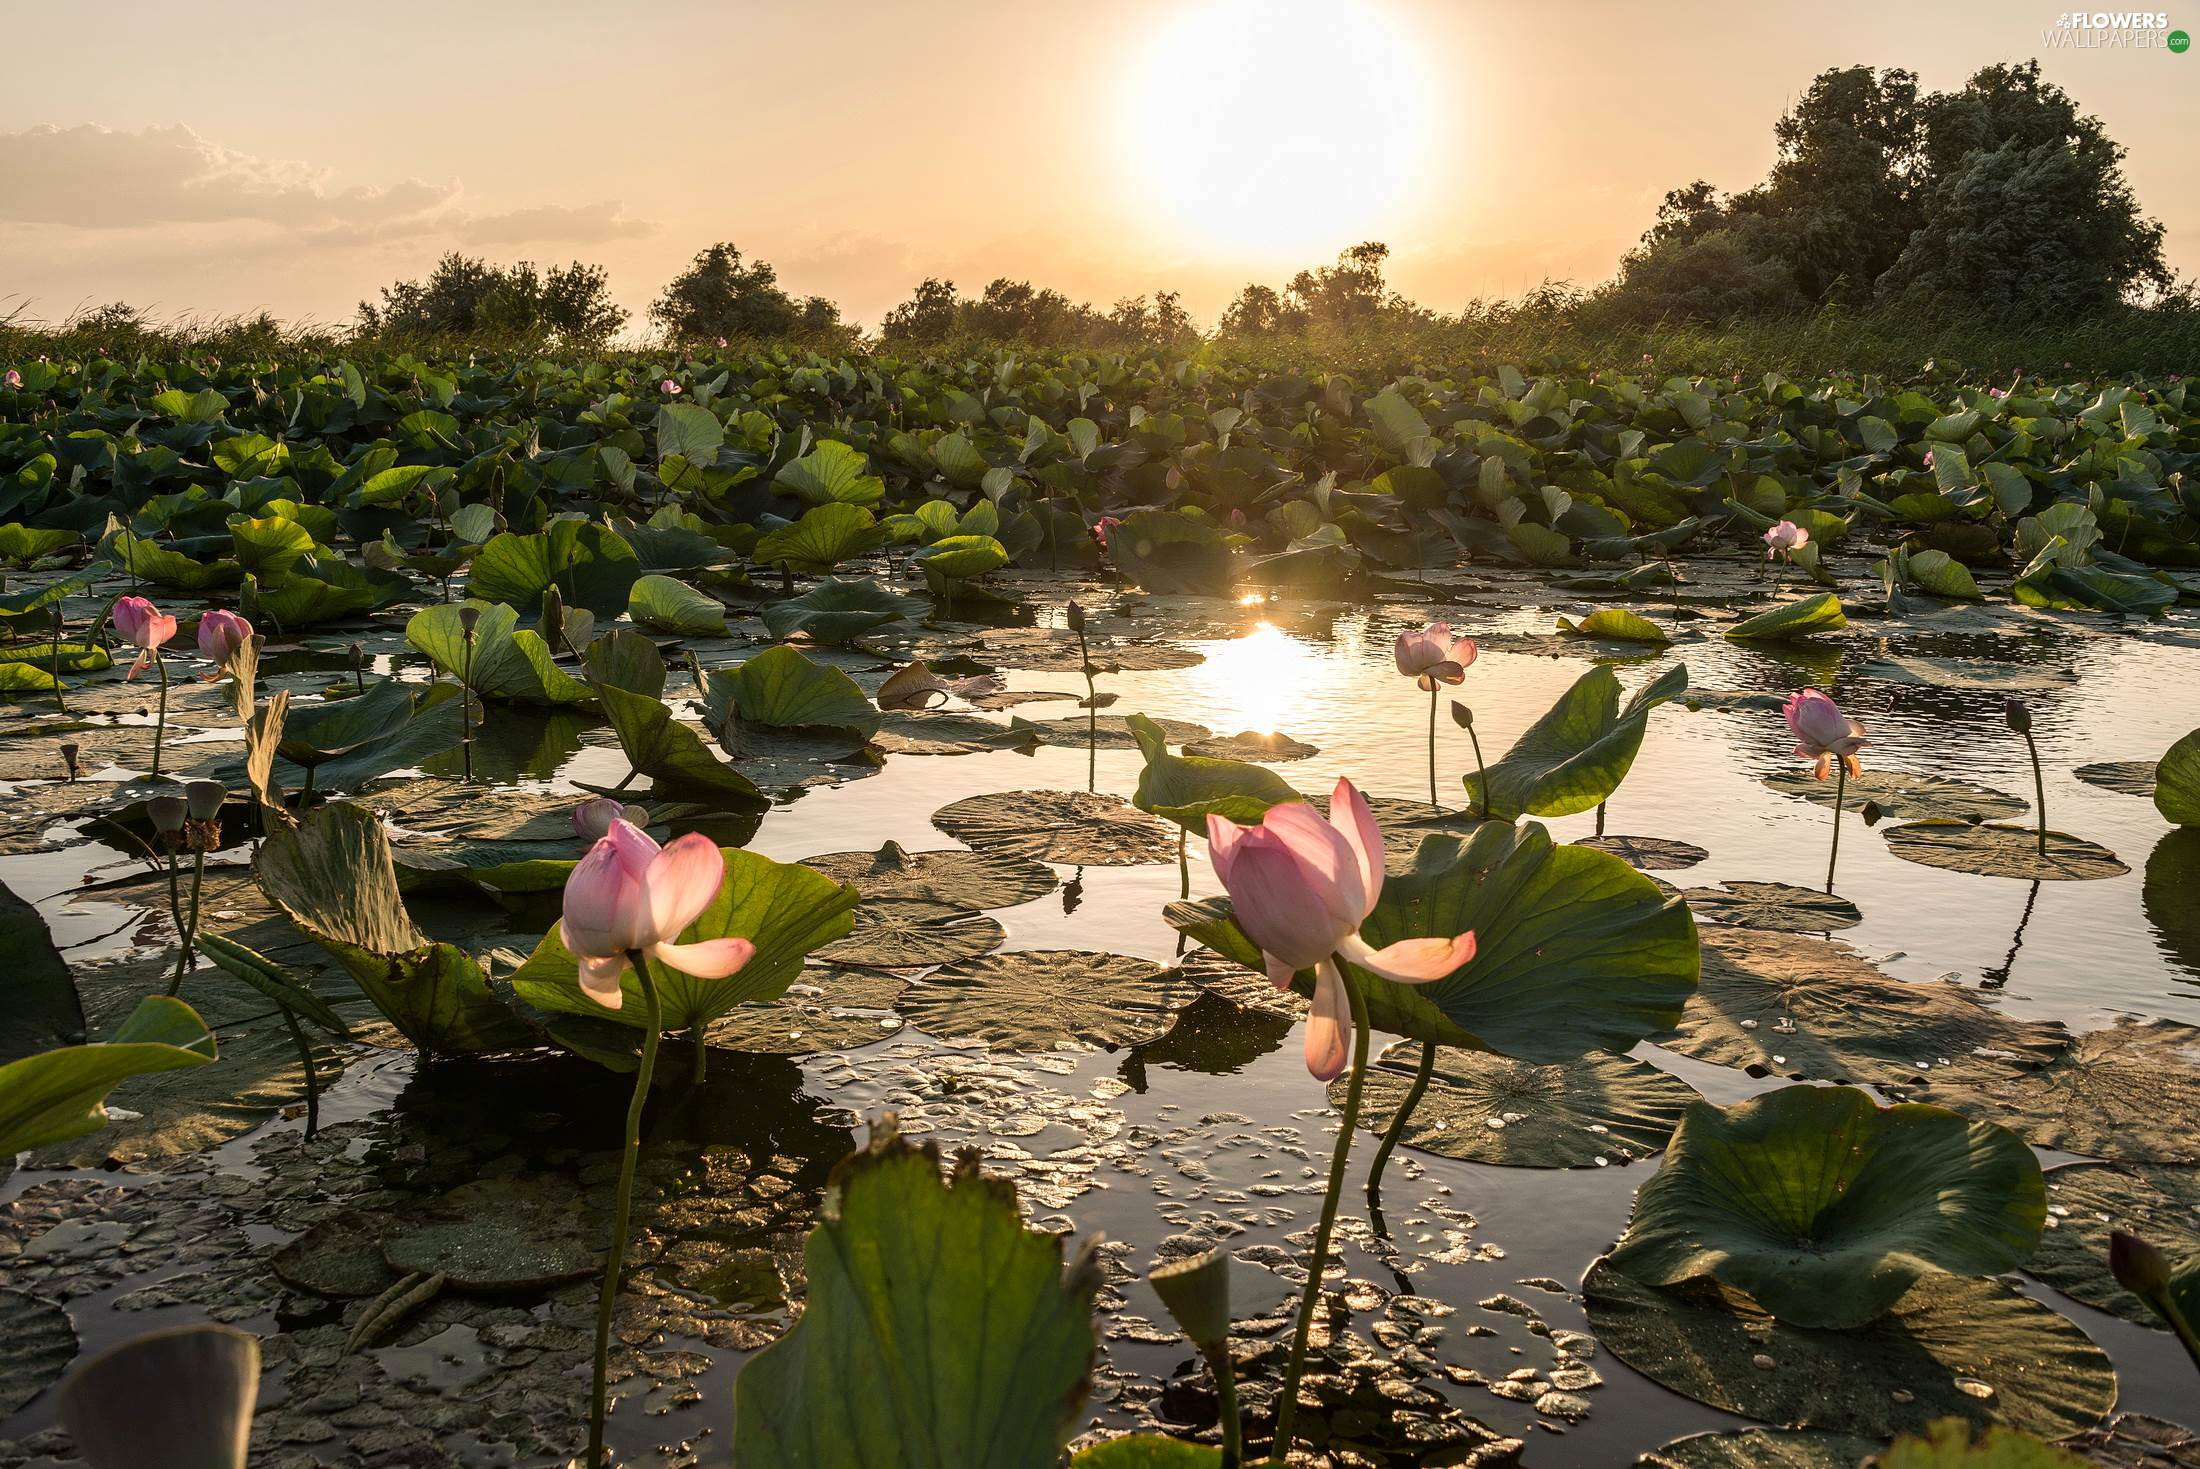 Pond - car, lotuses, sun, Flowers